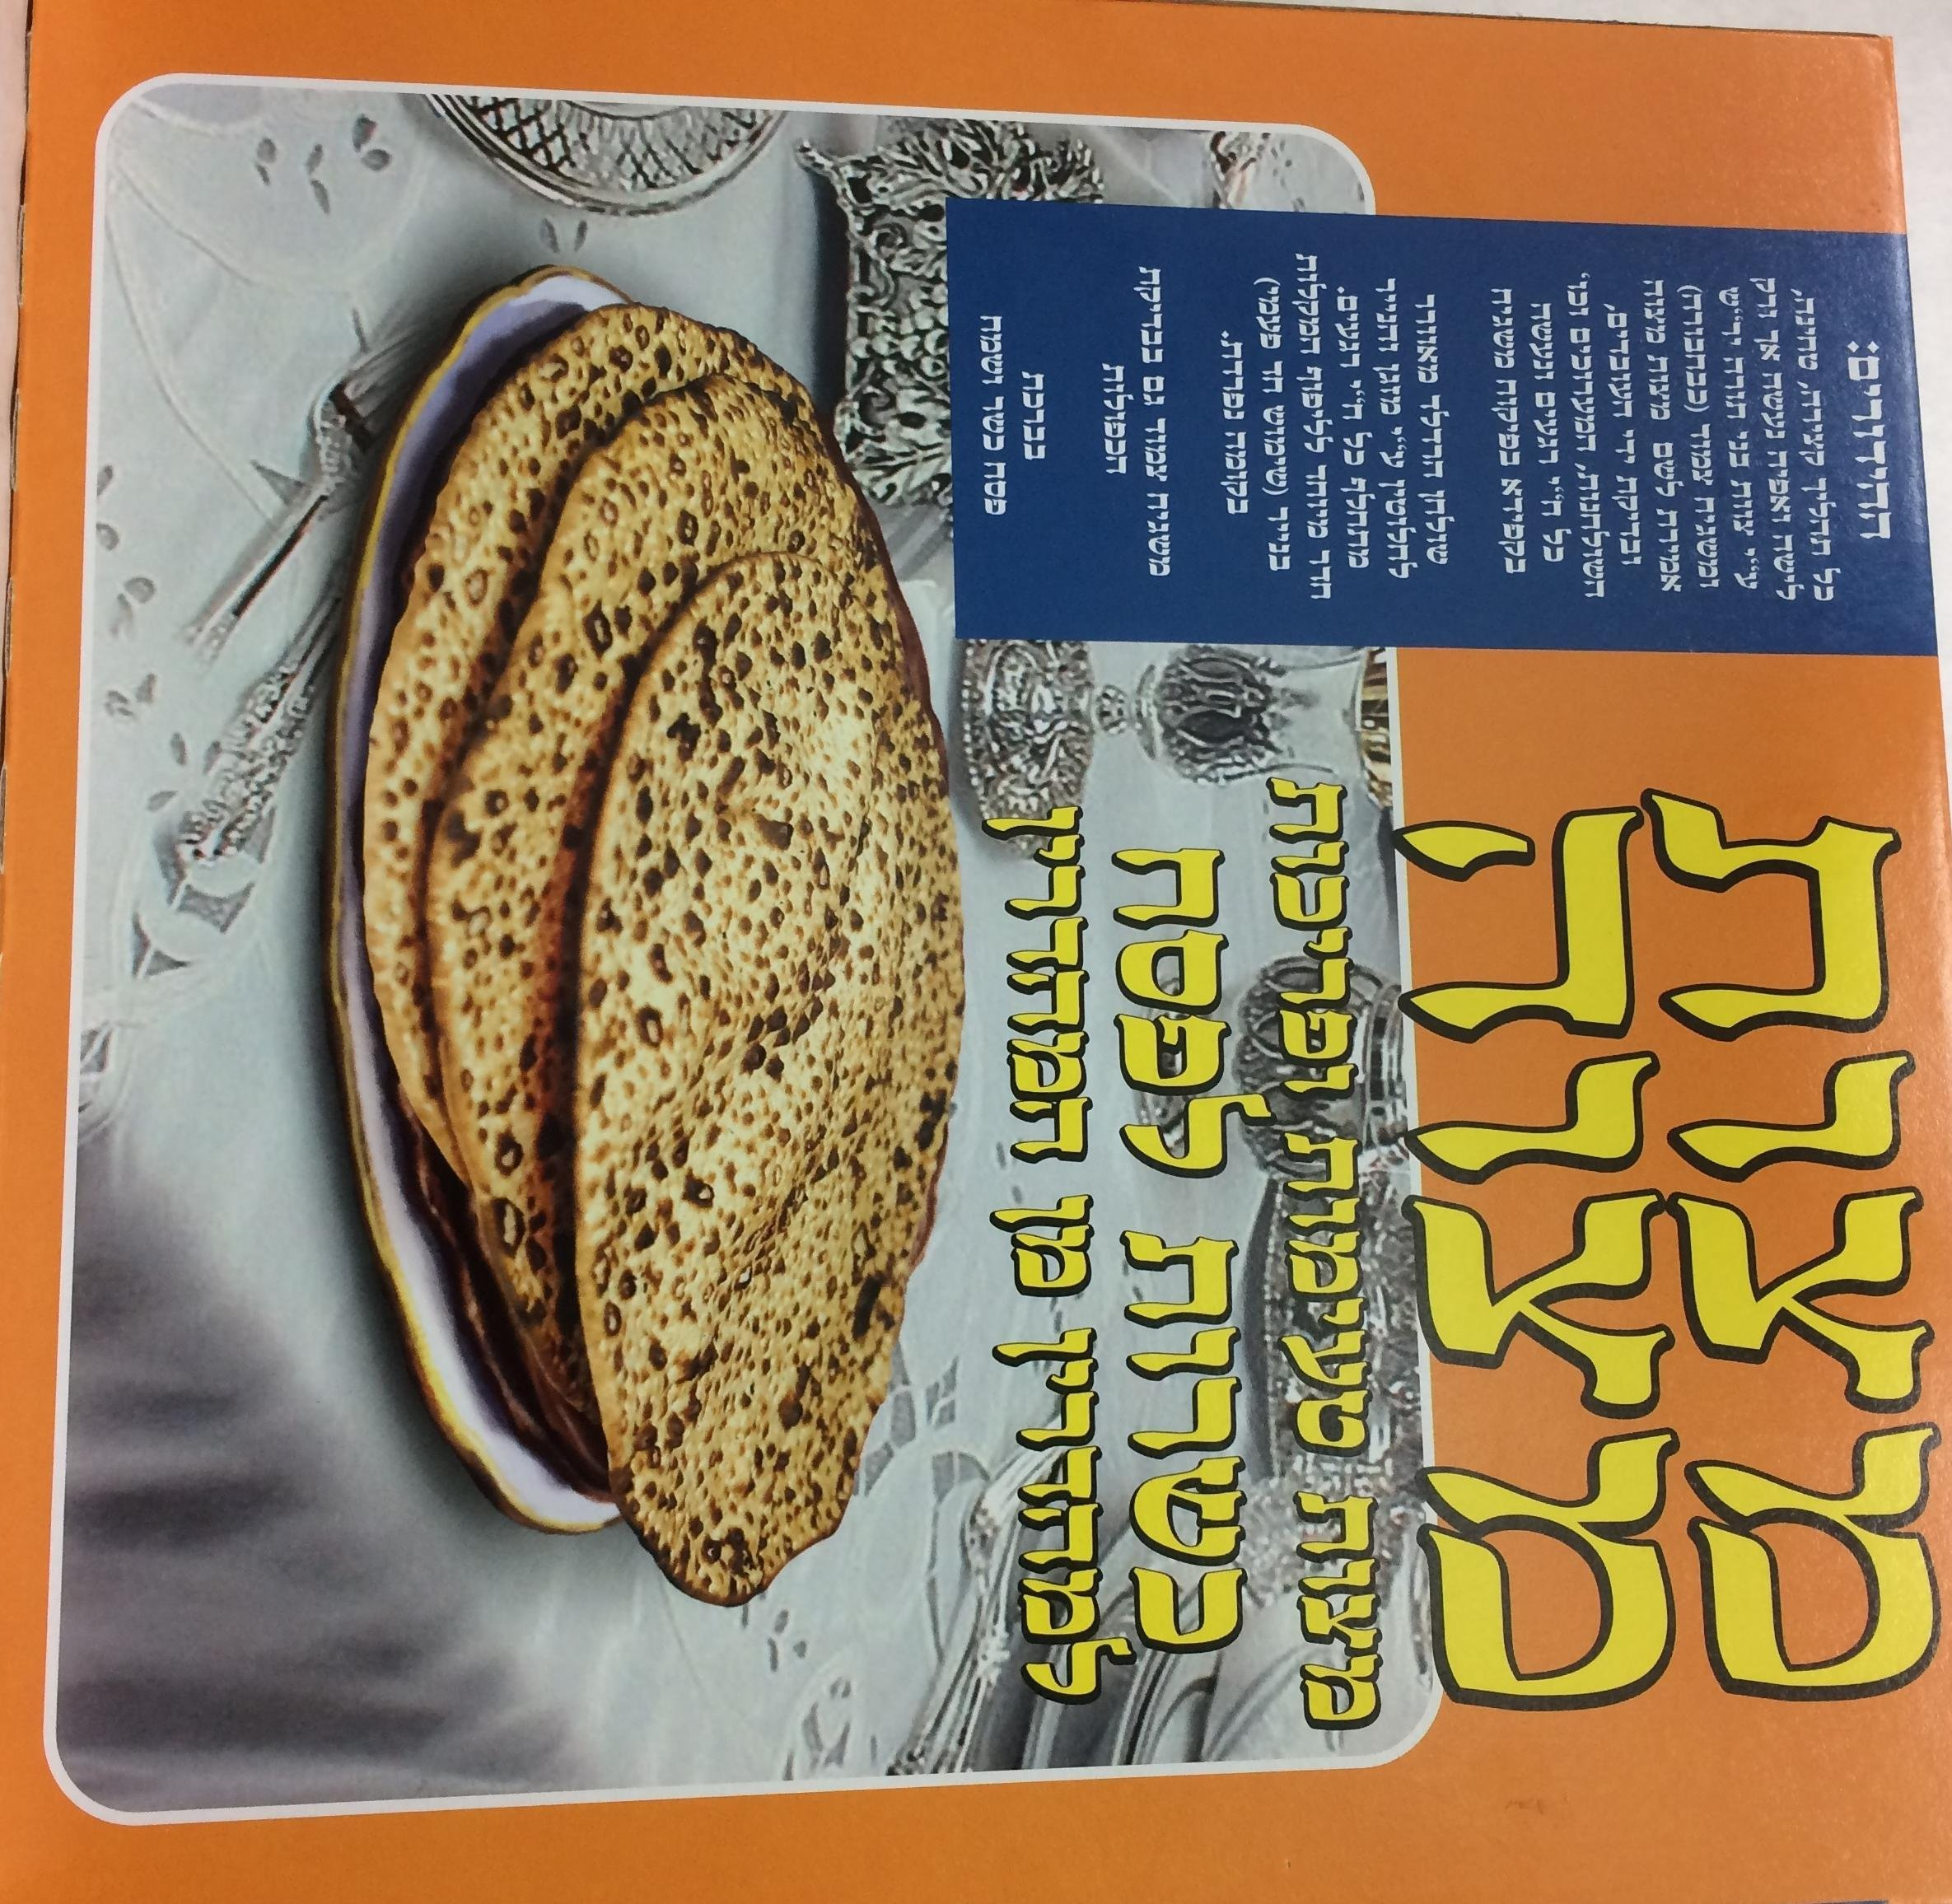 Lieber's Hand Matzos Kosher For Passover 16 Oz. Pack Of 1. by Lieber's (Image #1)